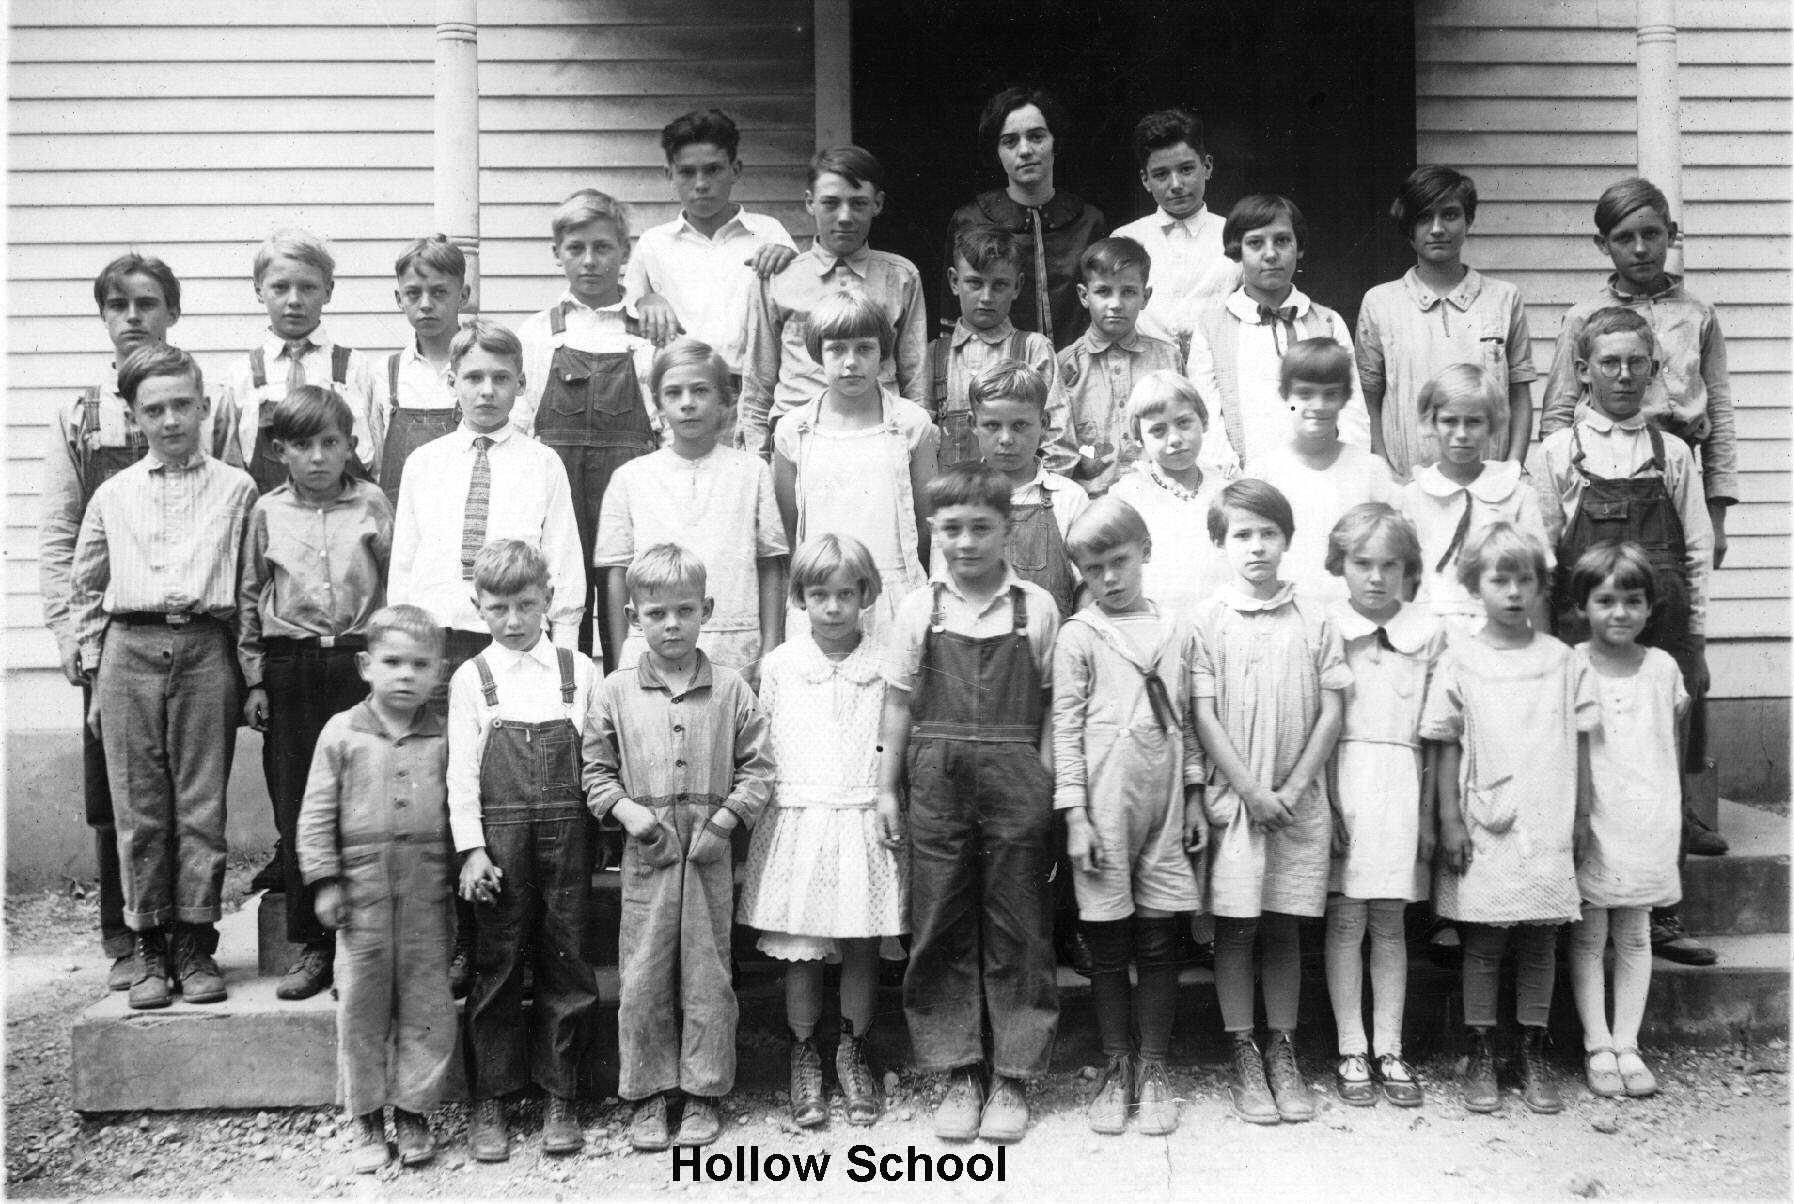 Photo of school children at Hollow School